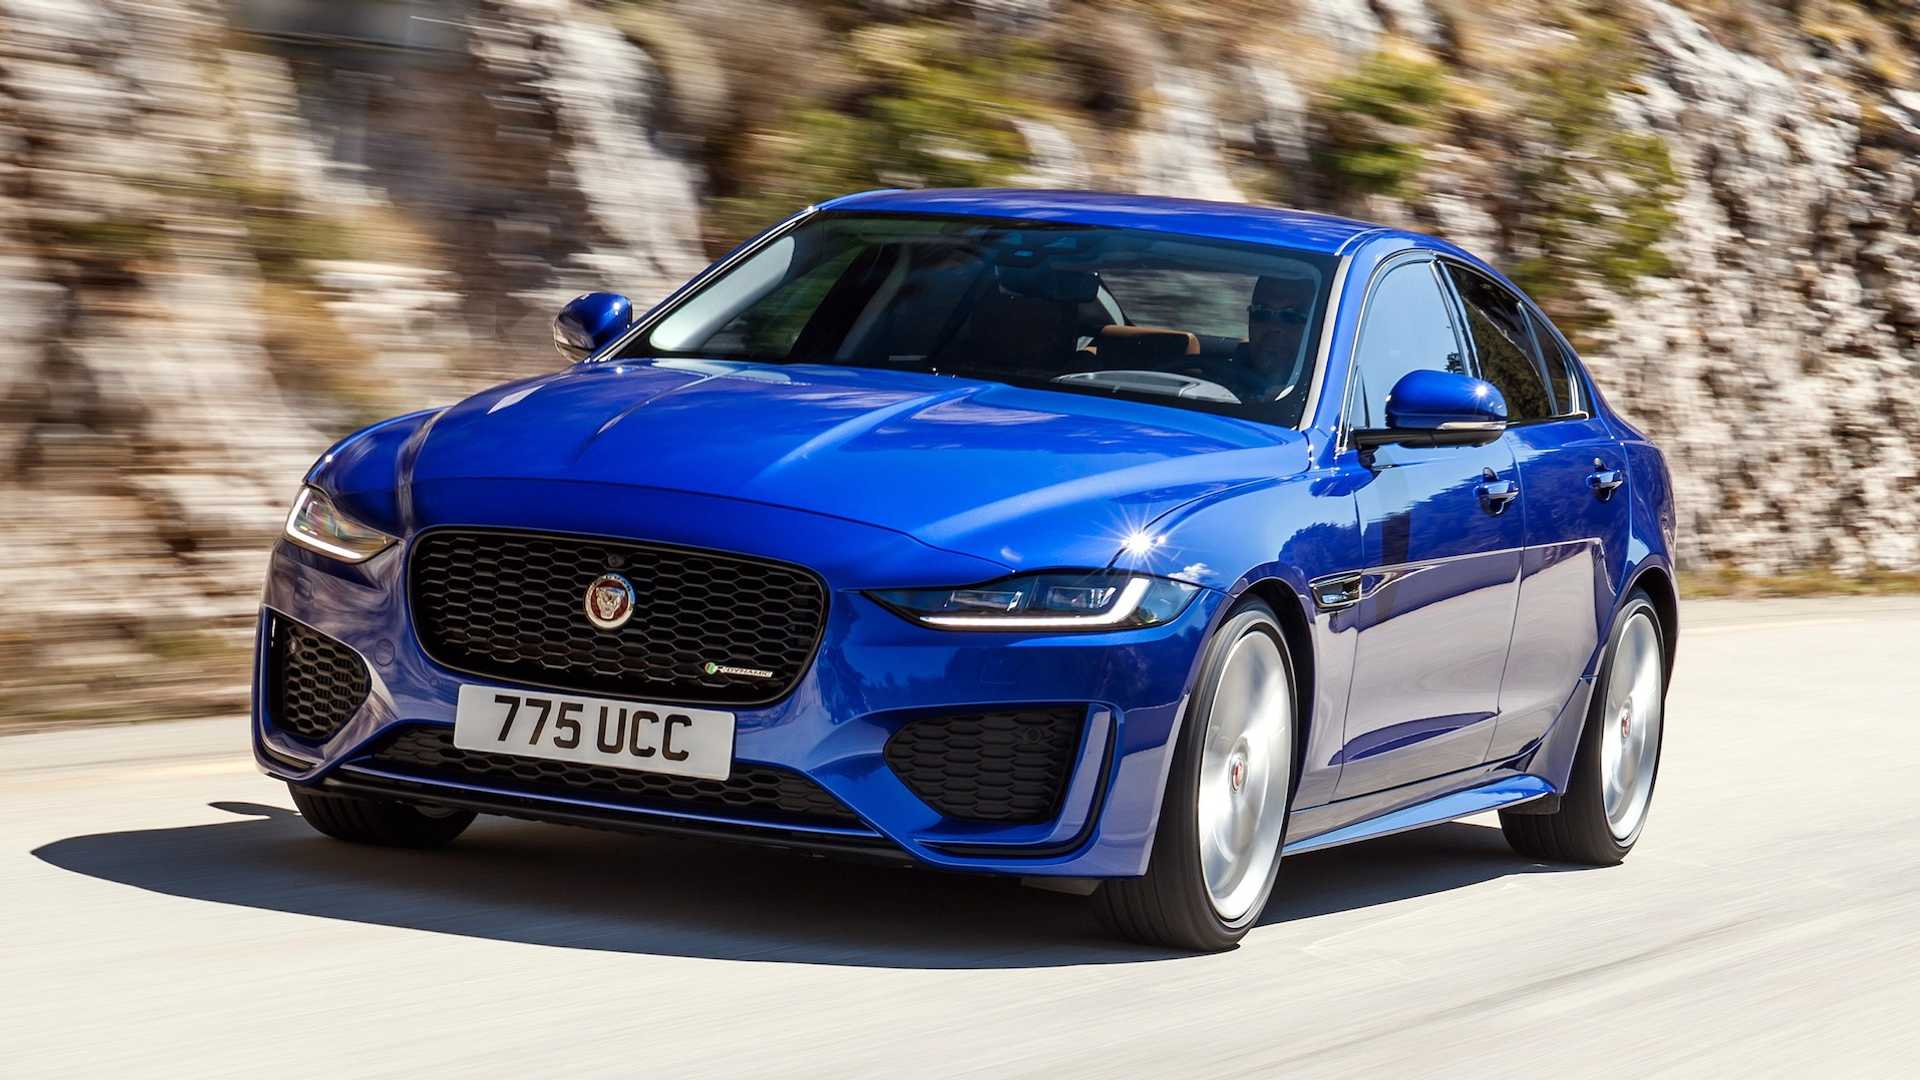 Jags Schedule 2020 2020 Jaguar XE First Drive: More Is More